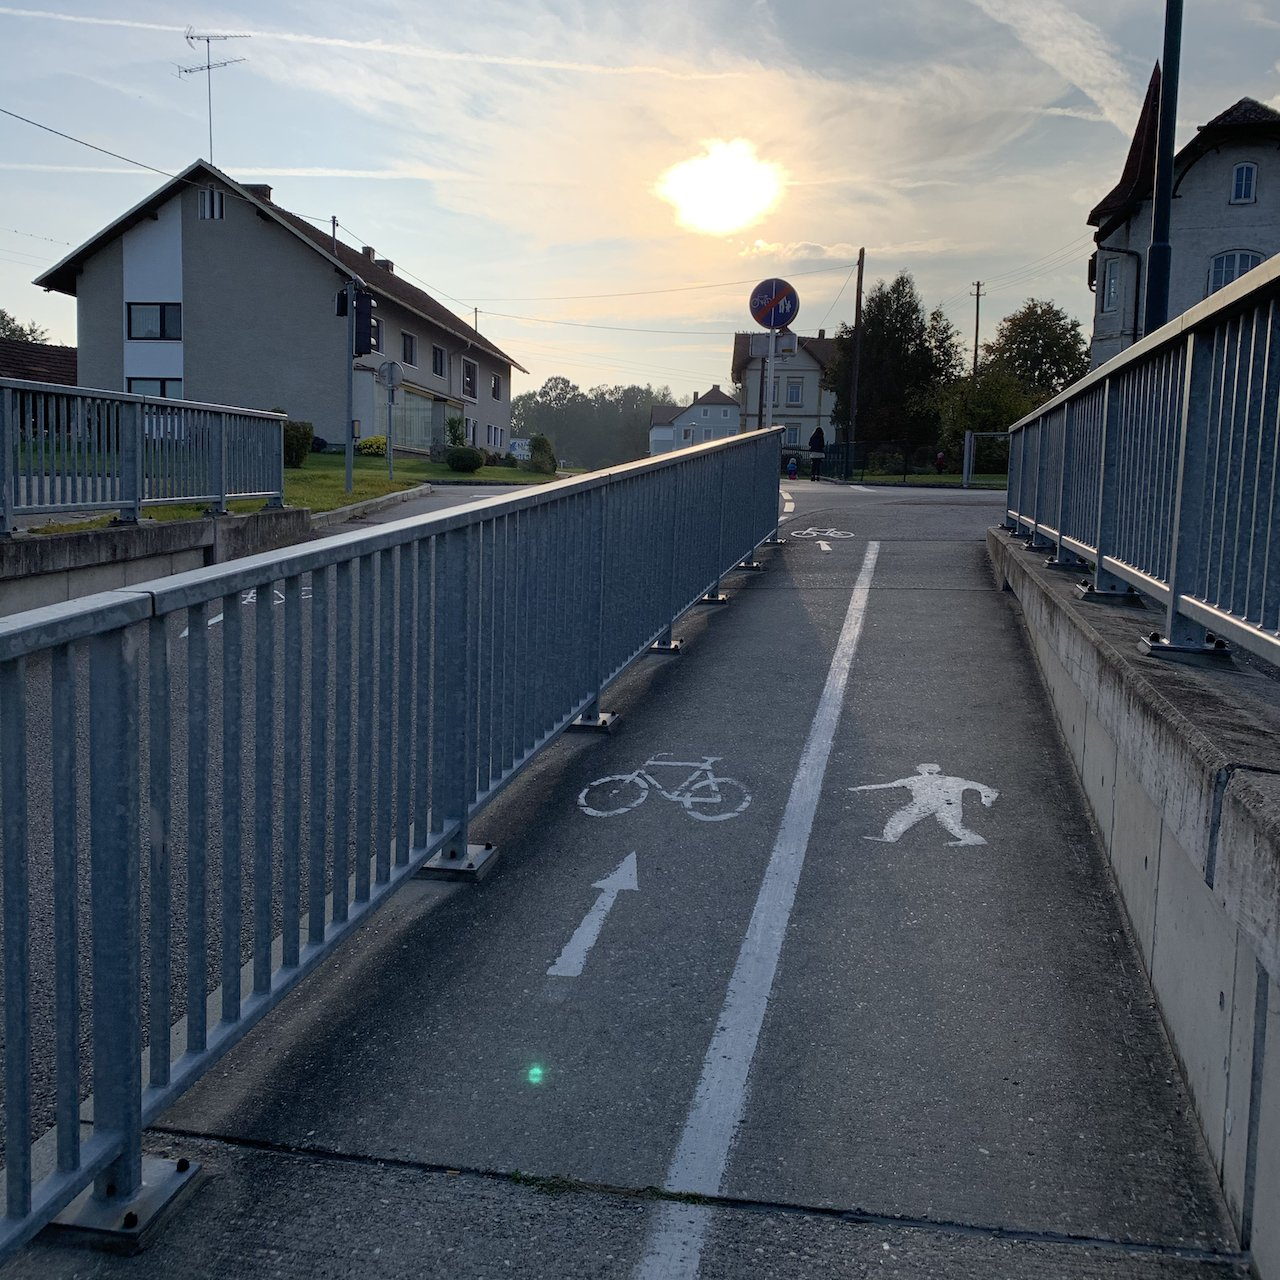 Geocache under the rail lines - The sun on its way down -itstartswithacoffee.com  #geocache #geocaching  #geocachingAustria #geocachingAT #sun #sunset